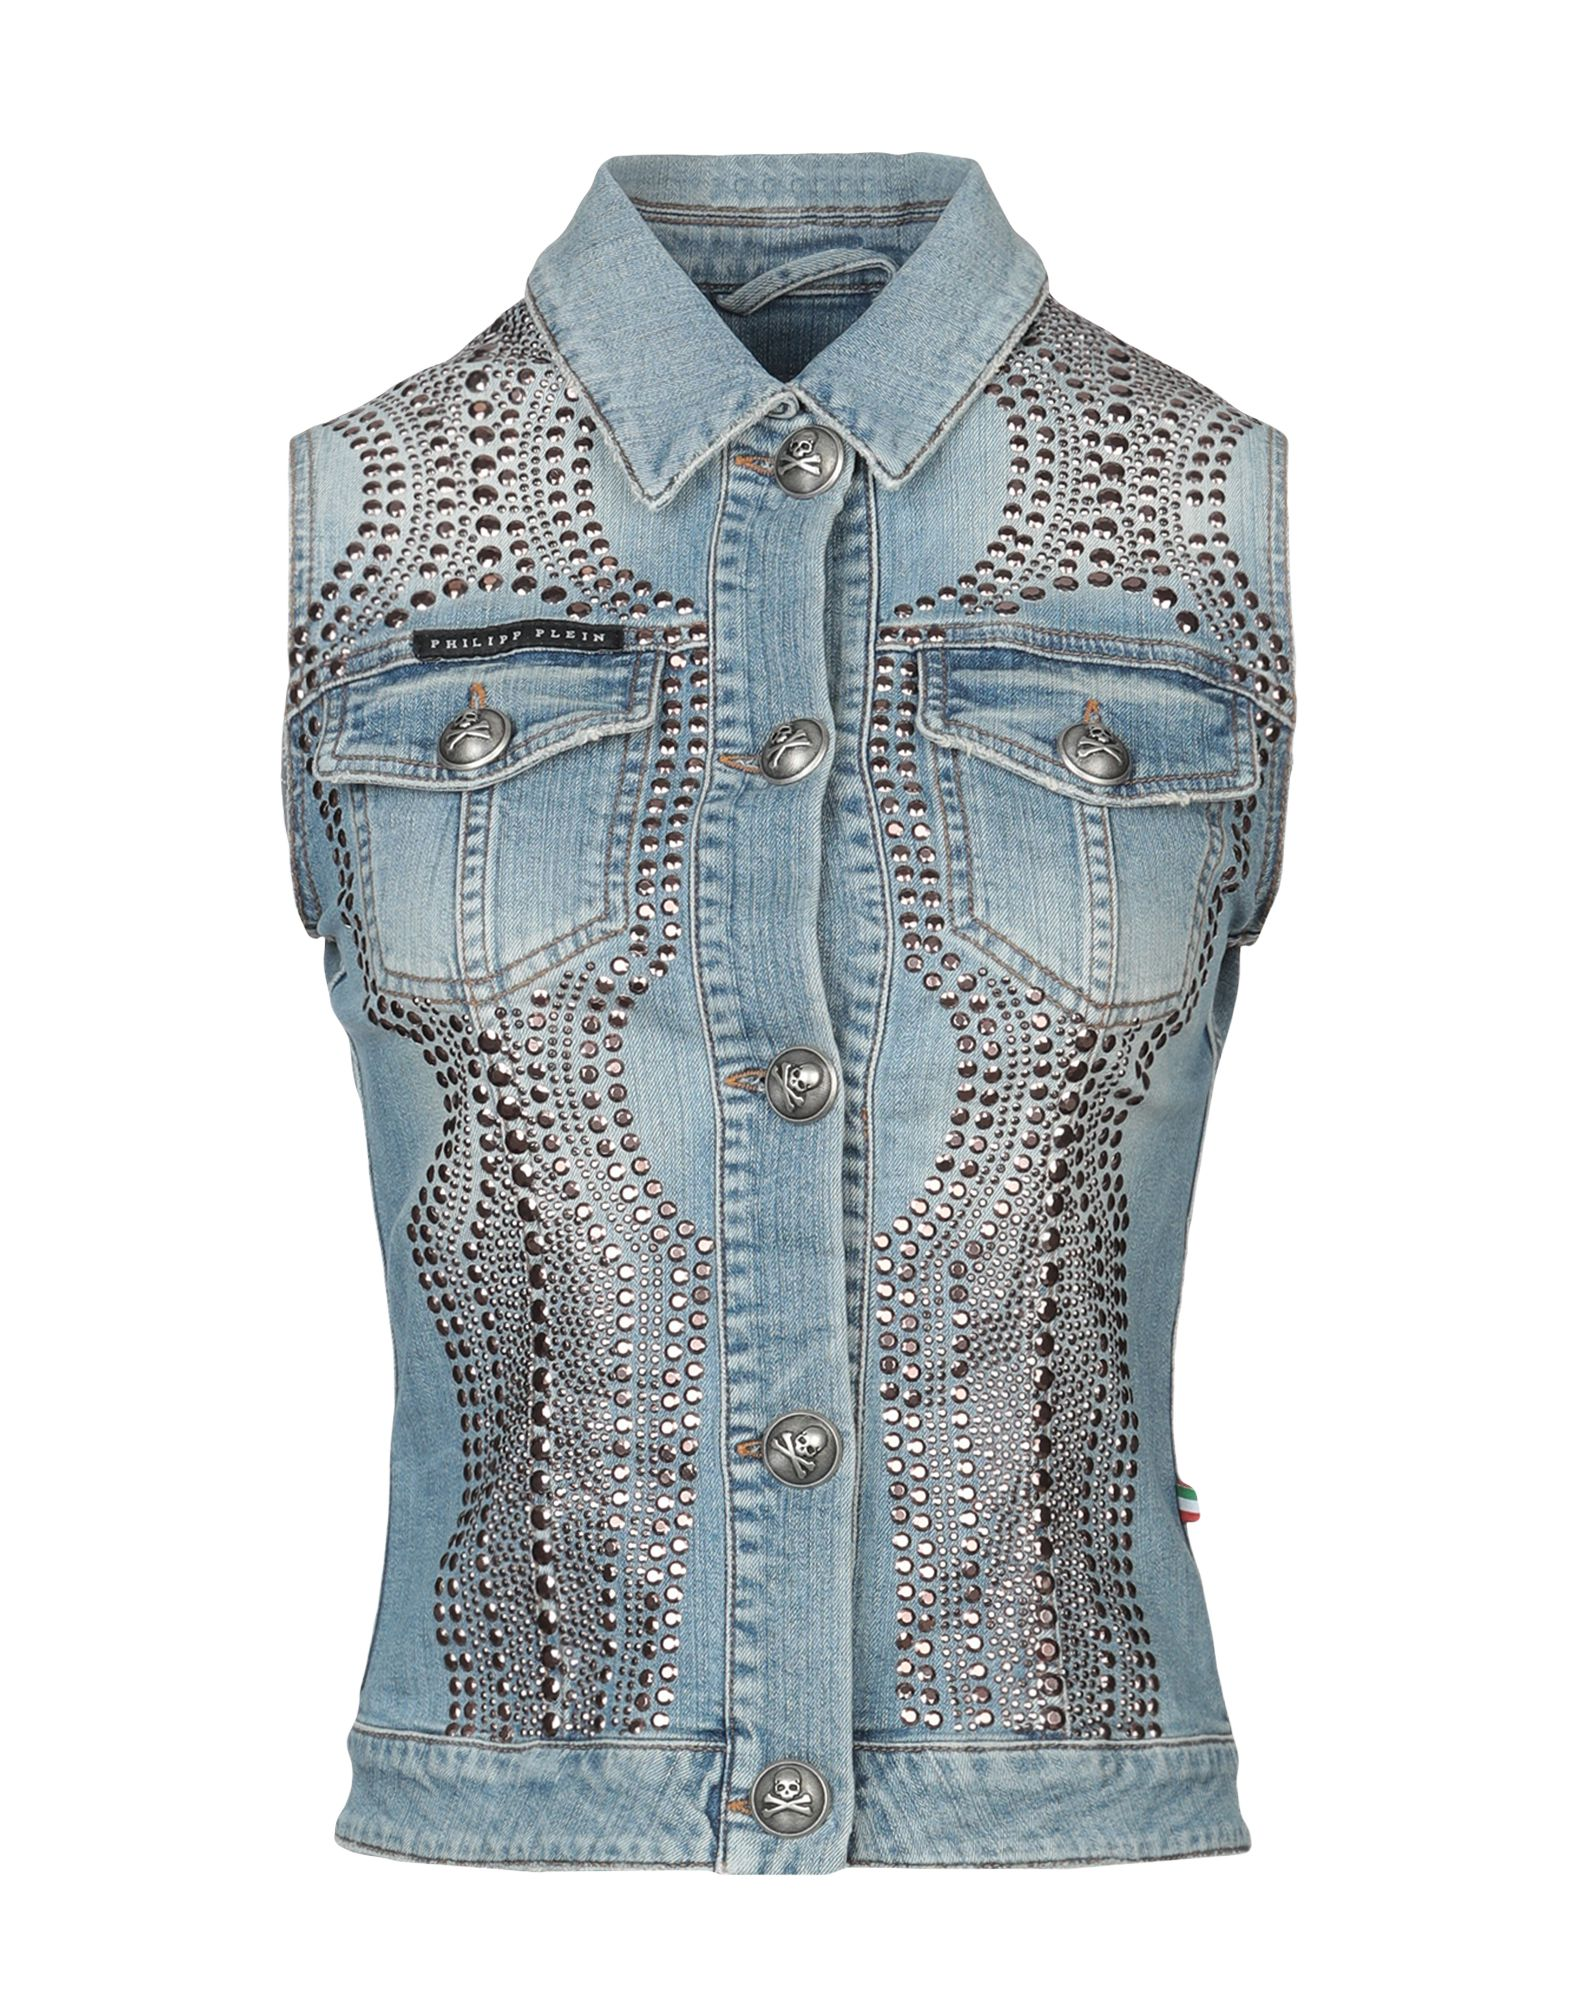 36d28c0909 Philipp Plein Denim Jacket - Women Philipp Plein Denim Jackets online on  YOOX United States - 42726052UK